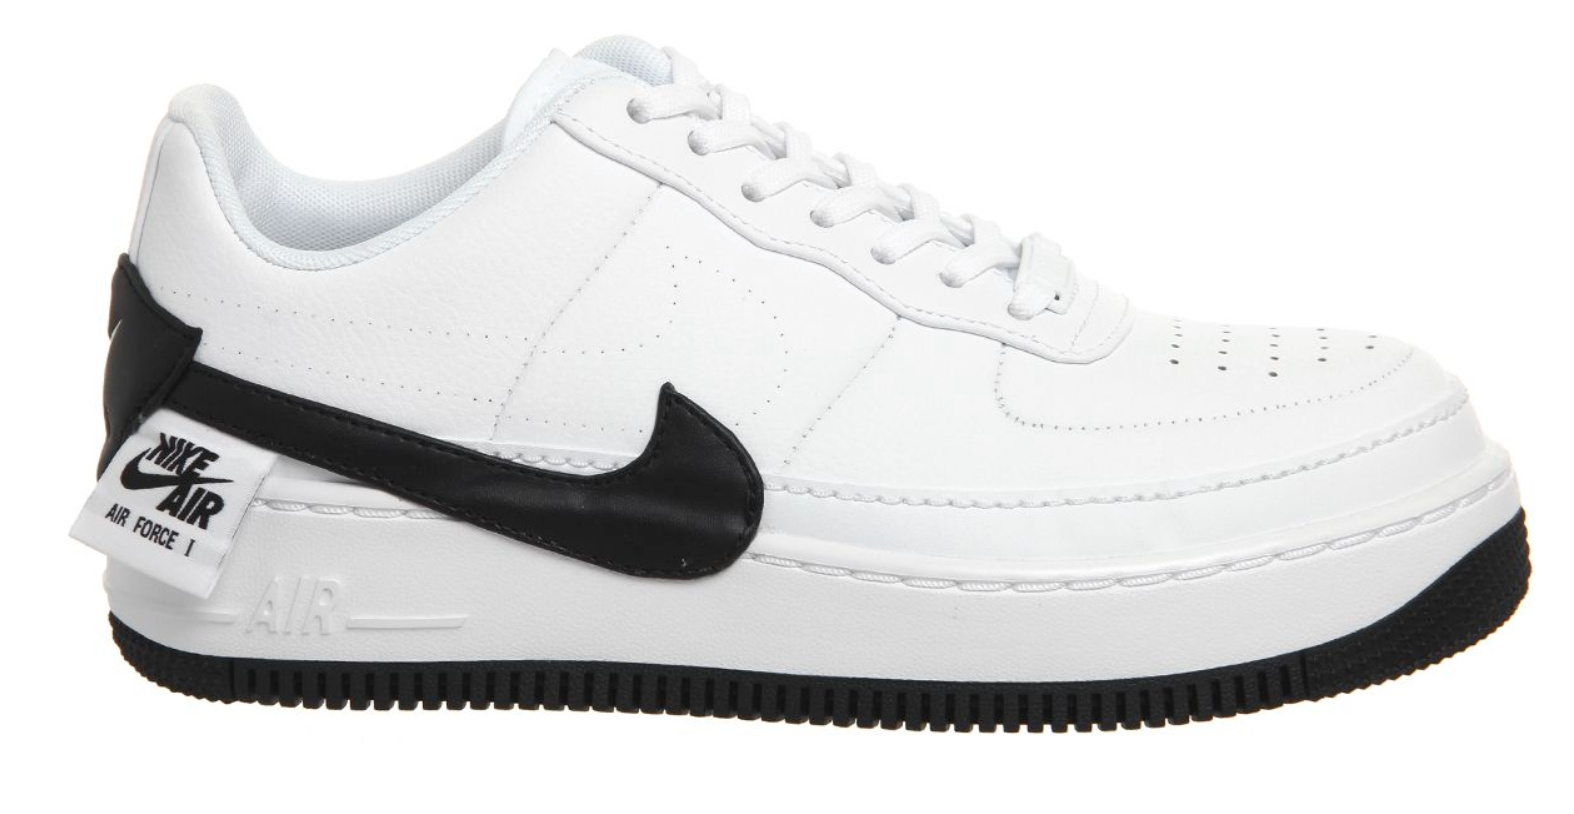 Nike Air Force 1 Jester White Black